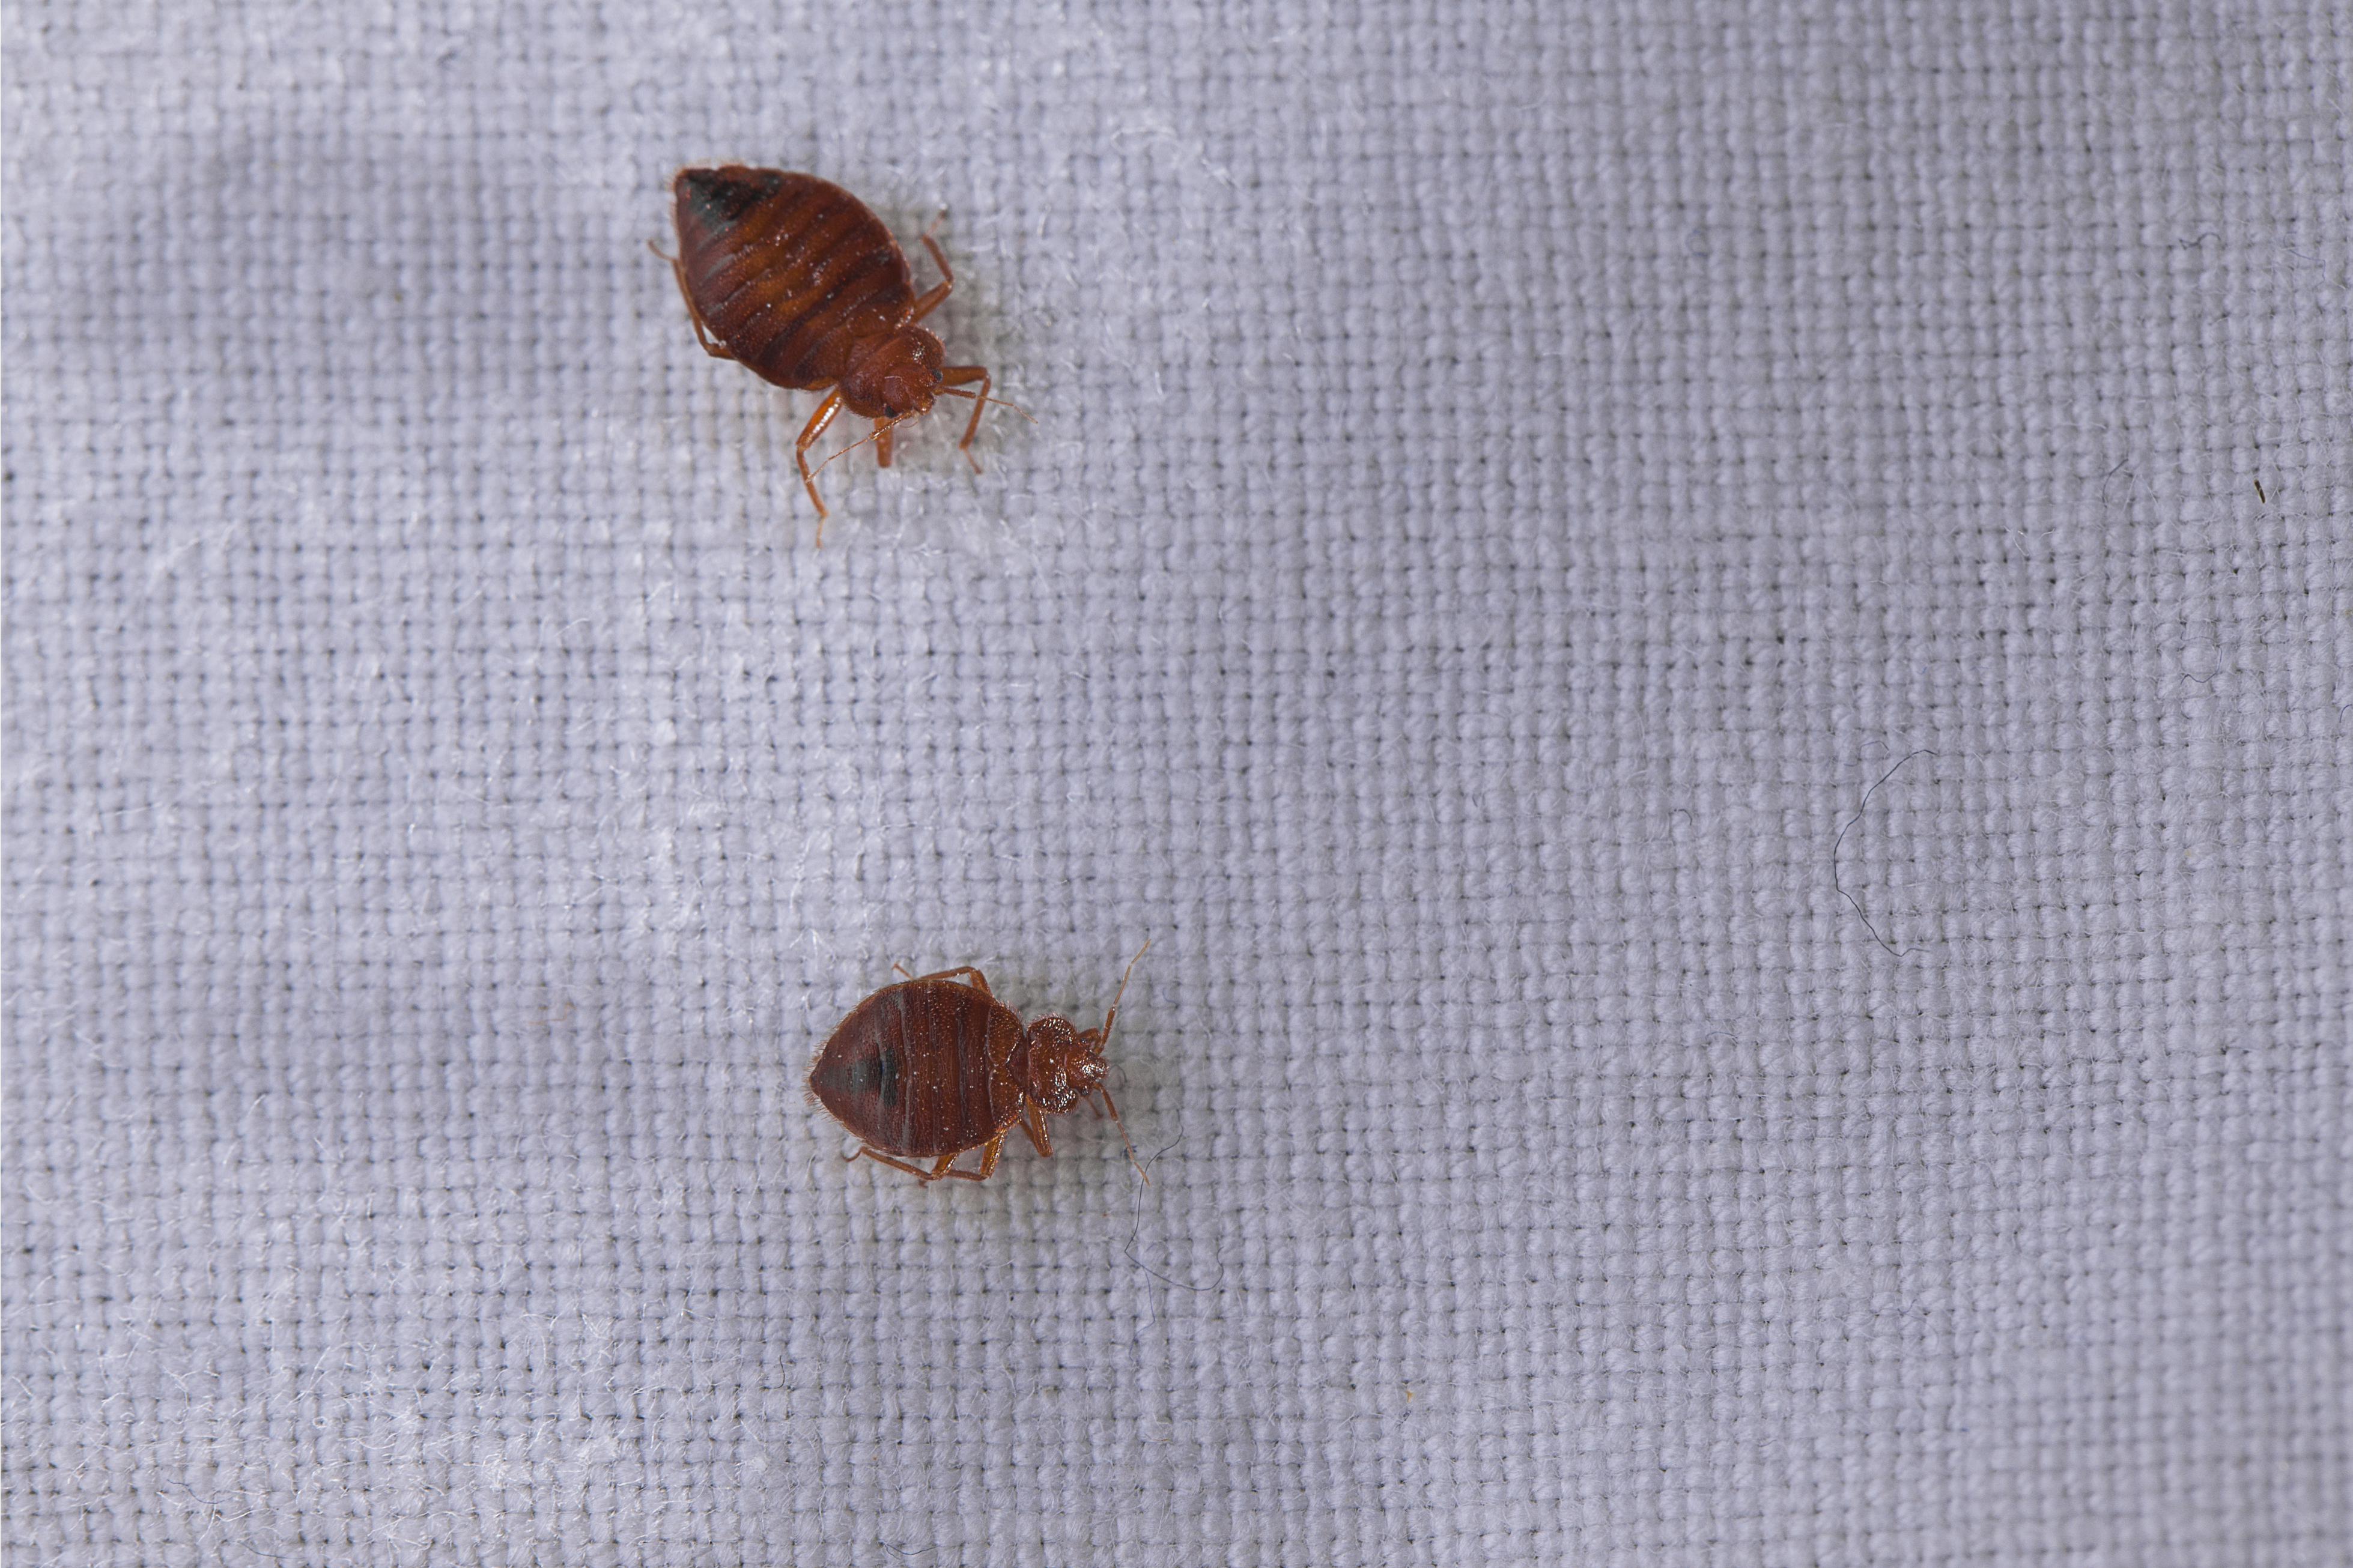 bed bugs | clean | cleanliness | traveling tips | bed bug tips | what to do if you have bed bugs | how to prevent getting bed bugs